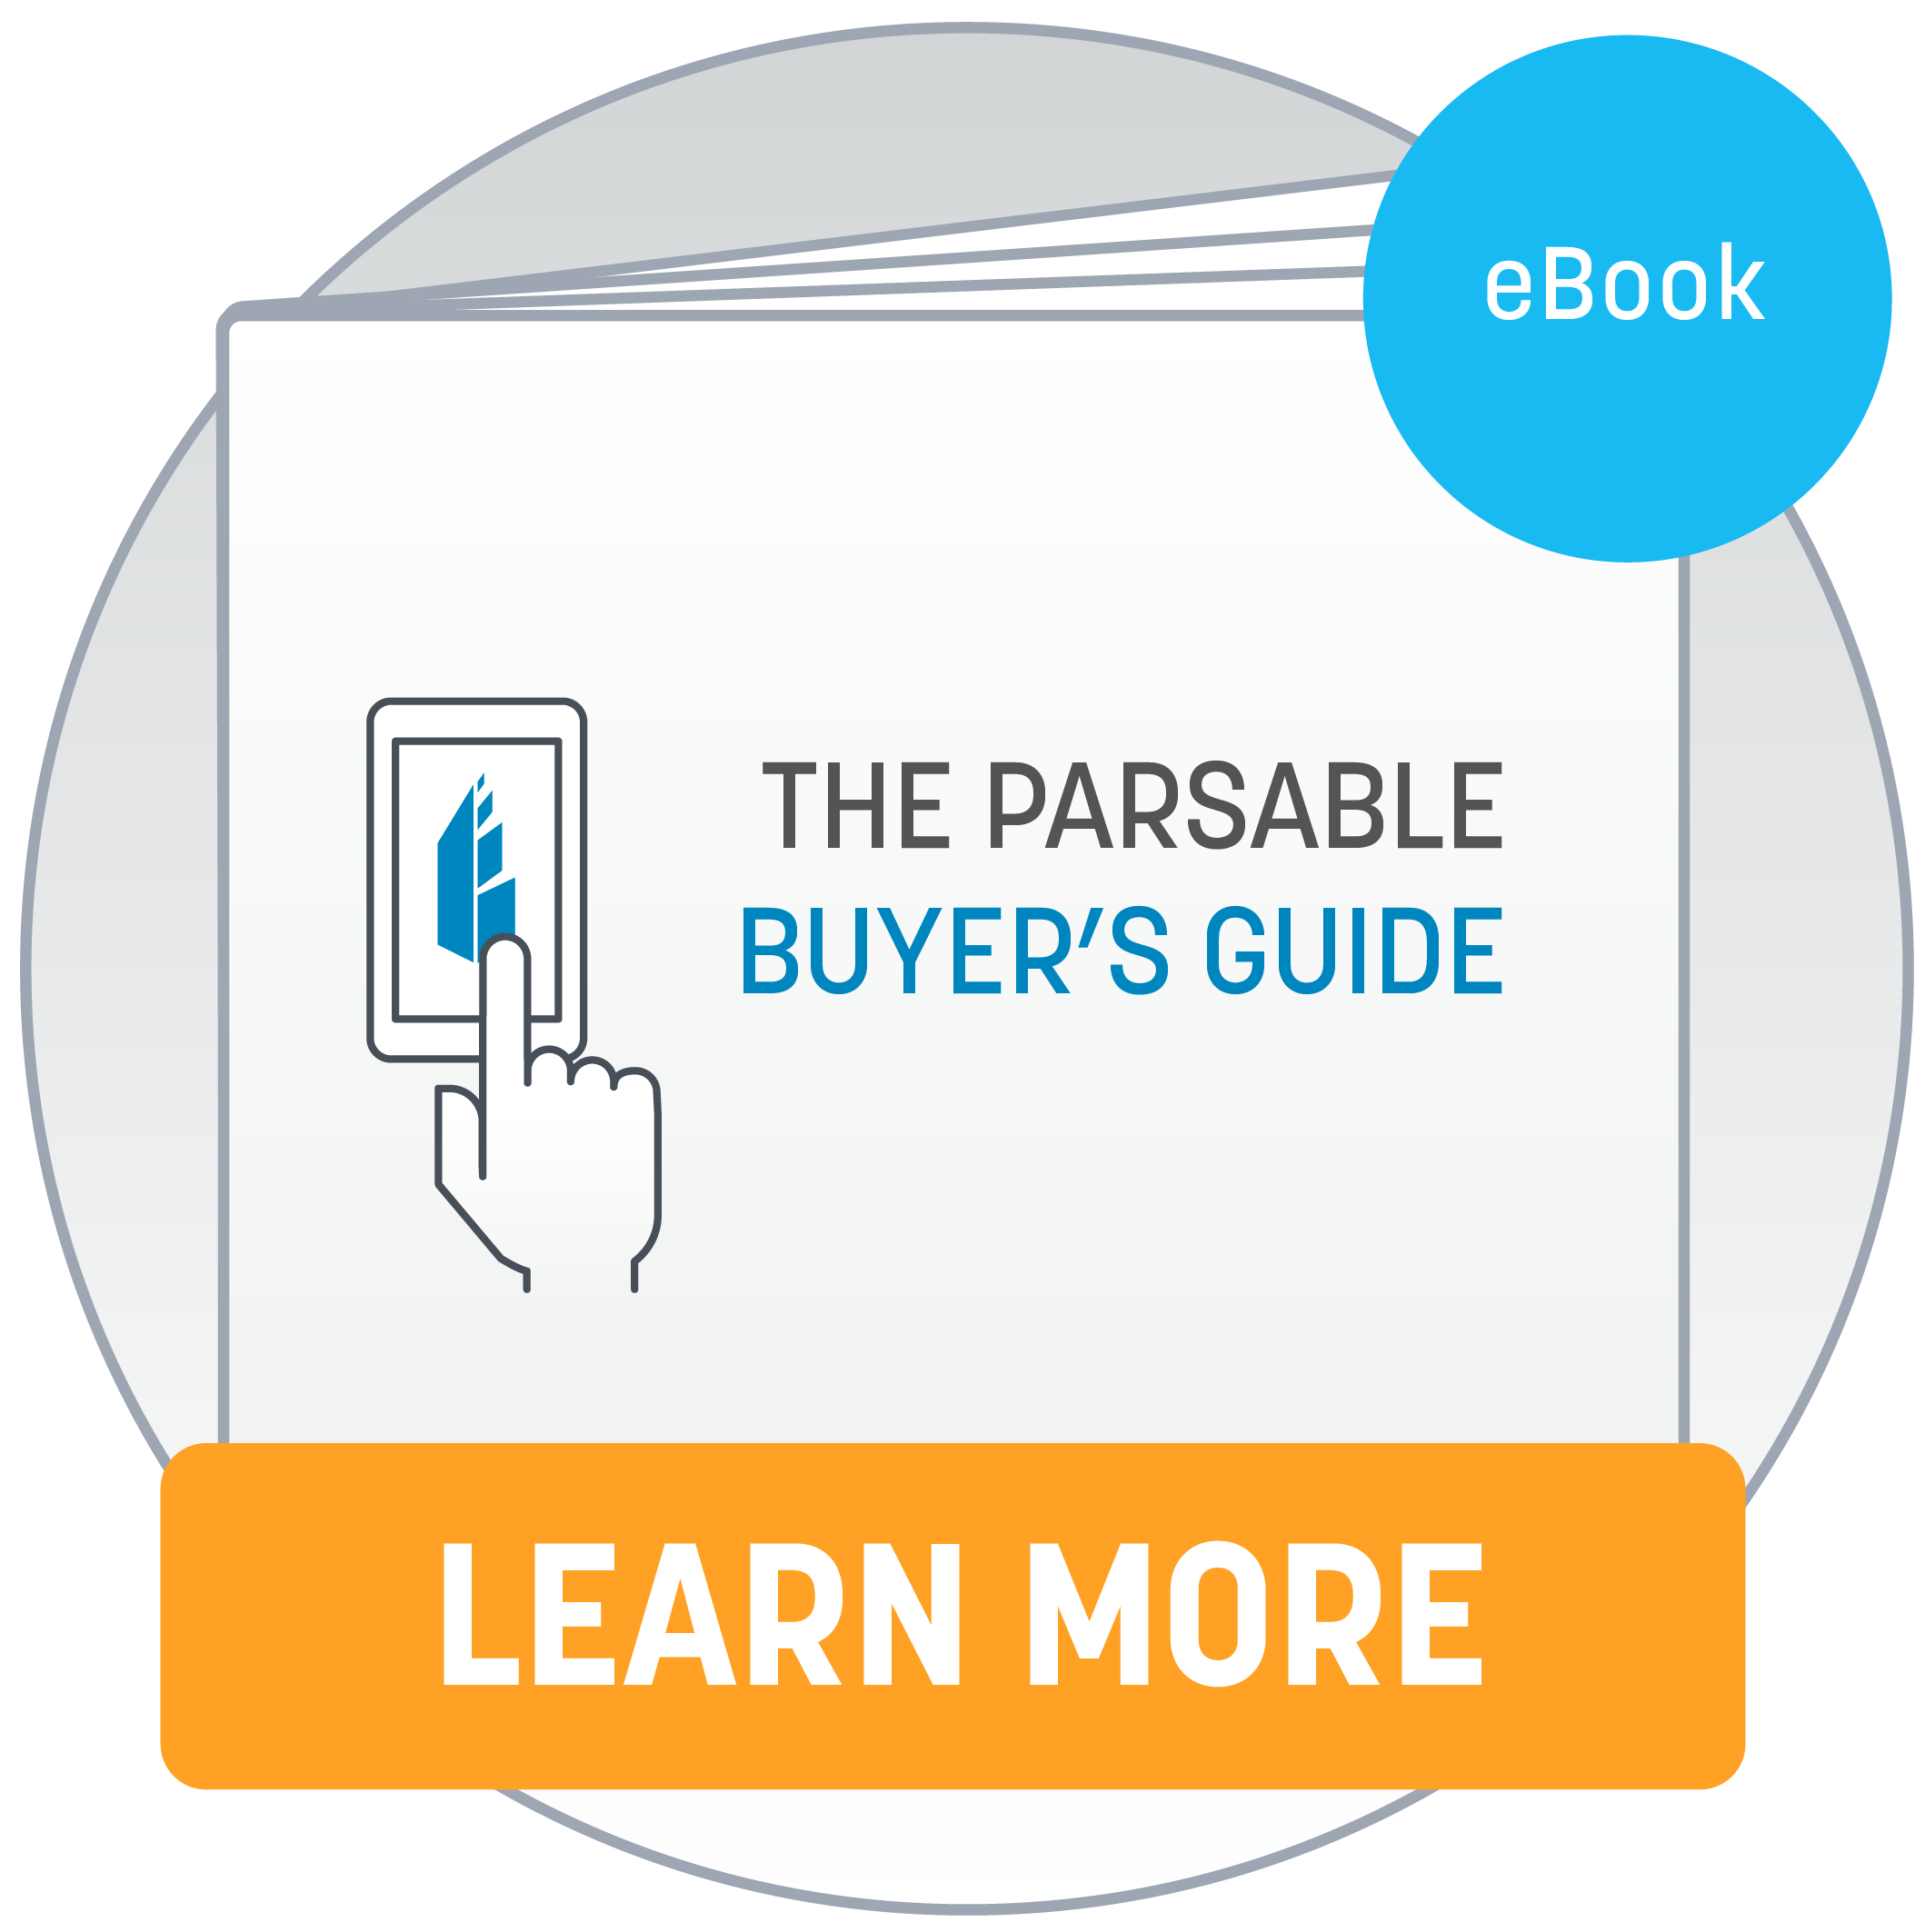 eBook icon in circle Buyers Guide w Learn More